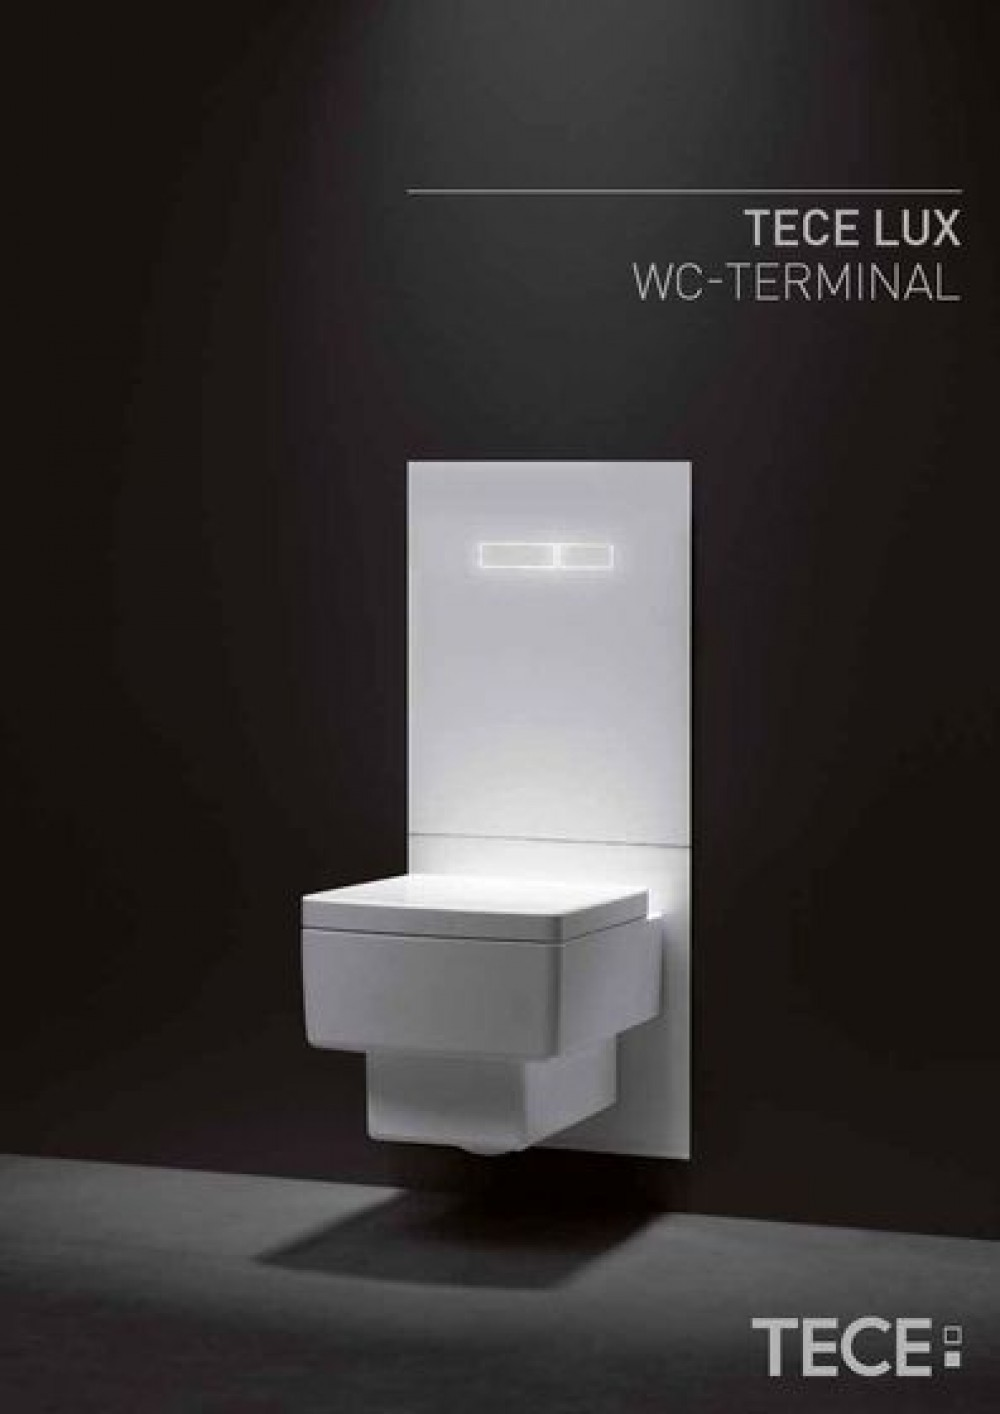 tece lux white toilet terminal tooaleta. Black Bedroom Furniture Sets. Home Design Ideas